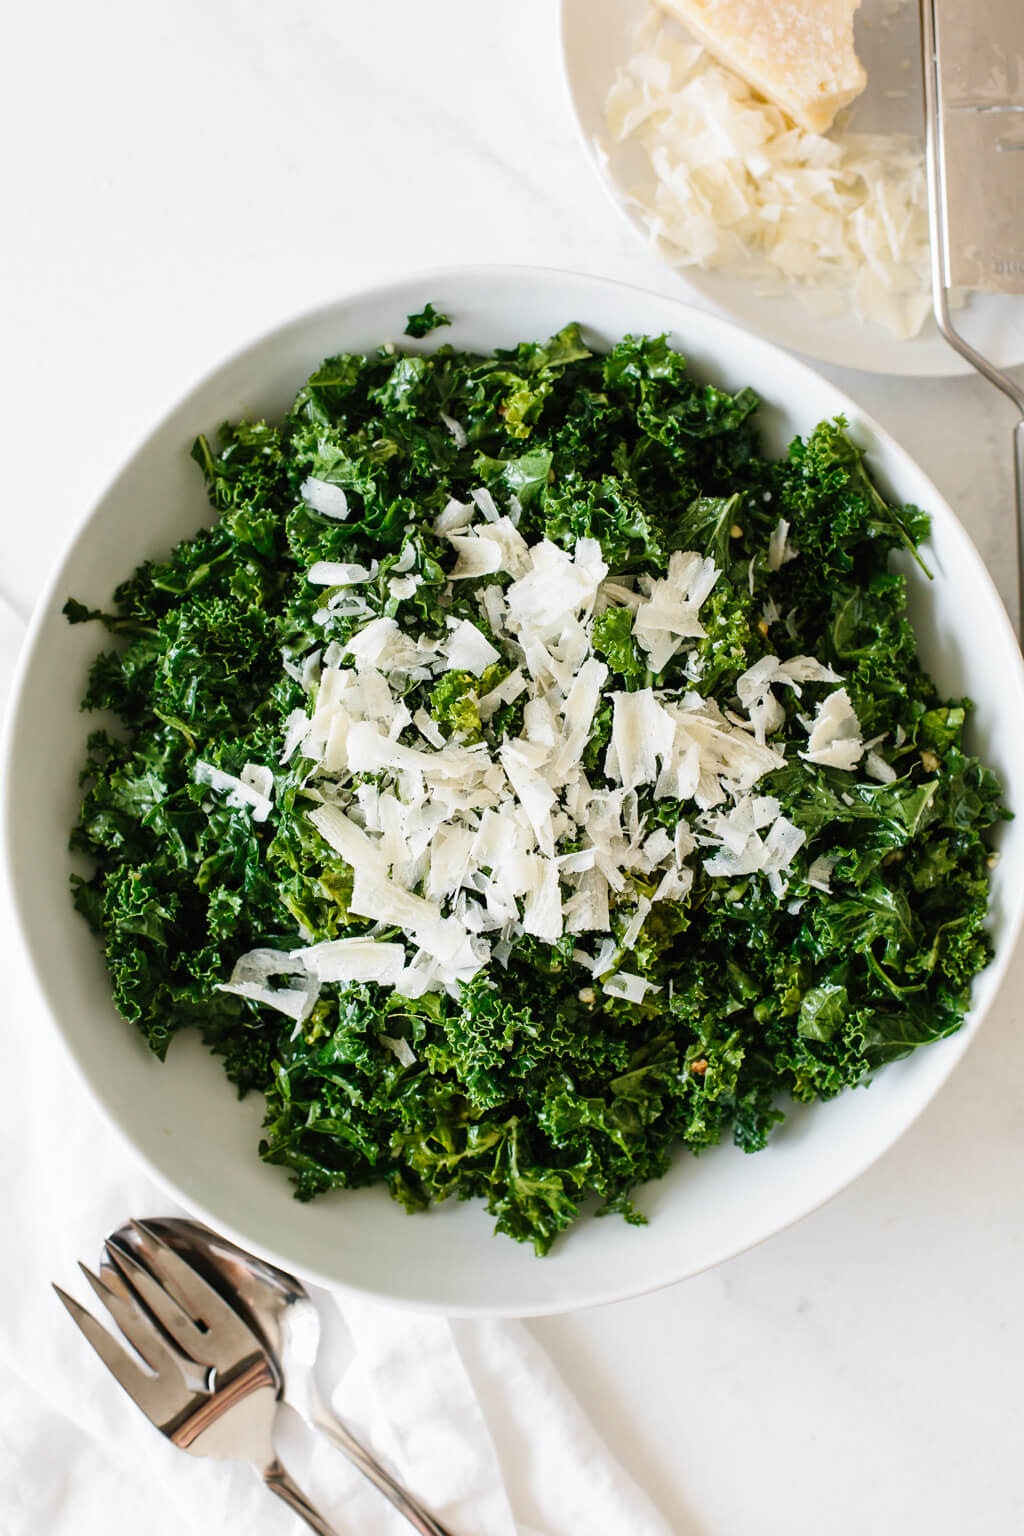 kale salad in a white bowl next to a bowl of shredded parmesan.